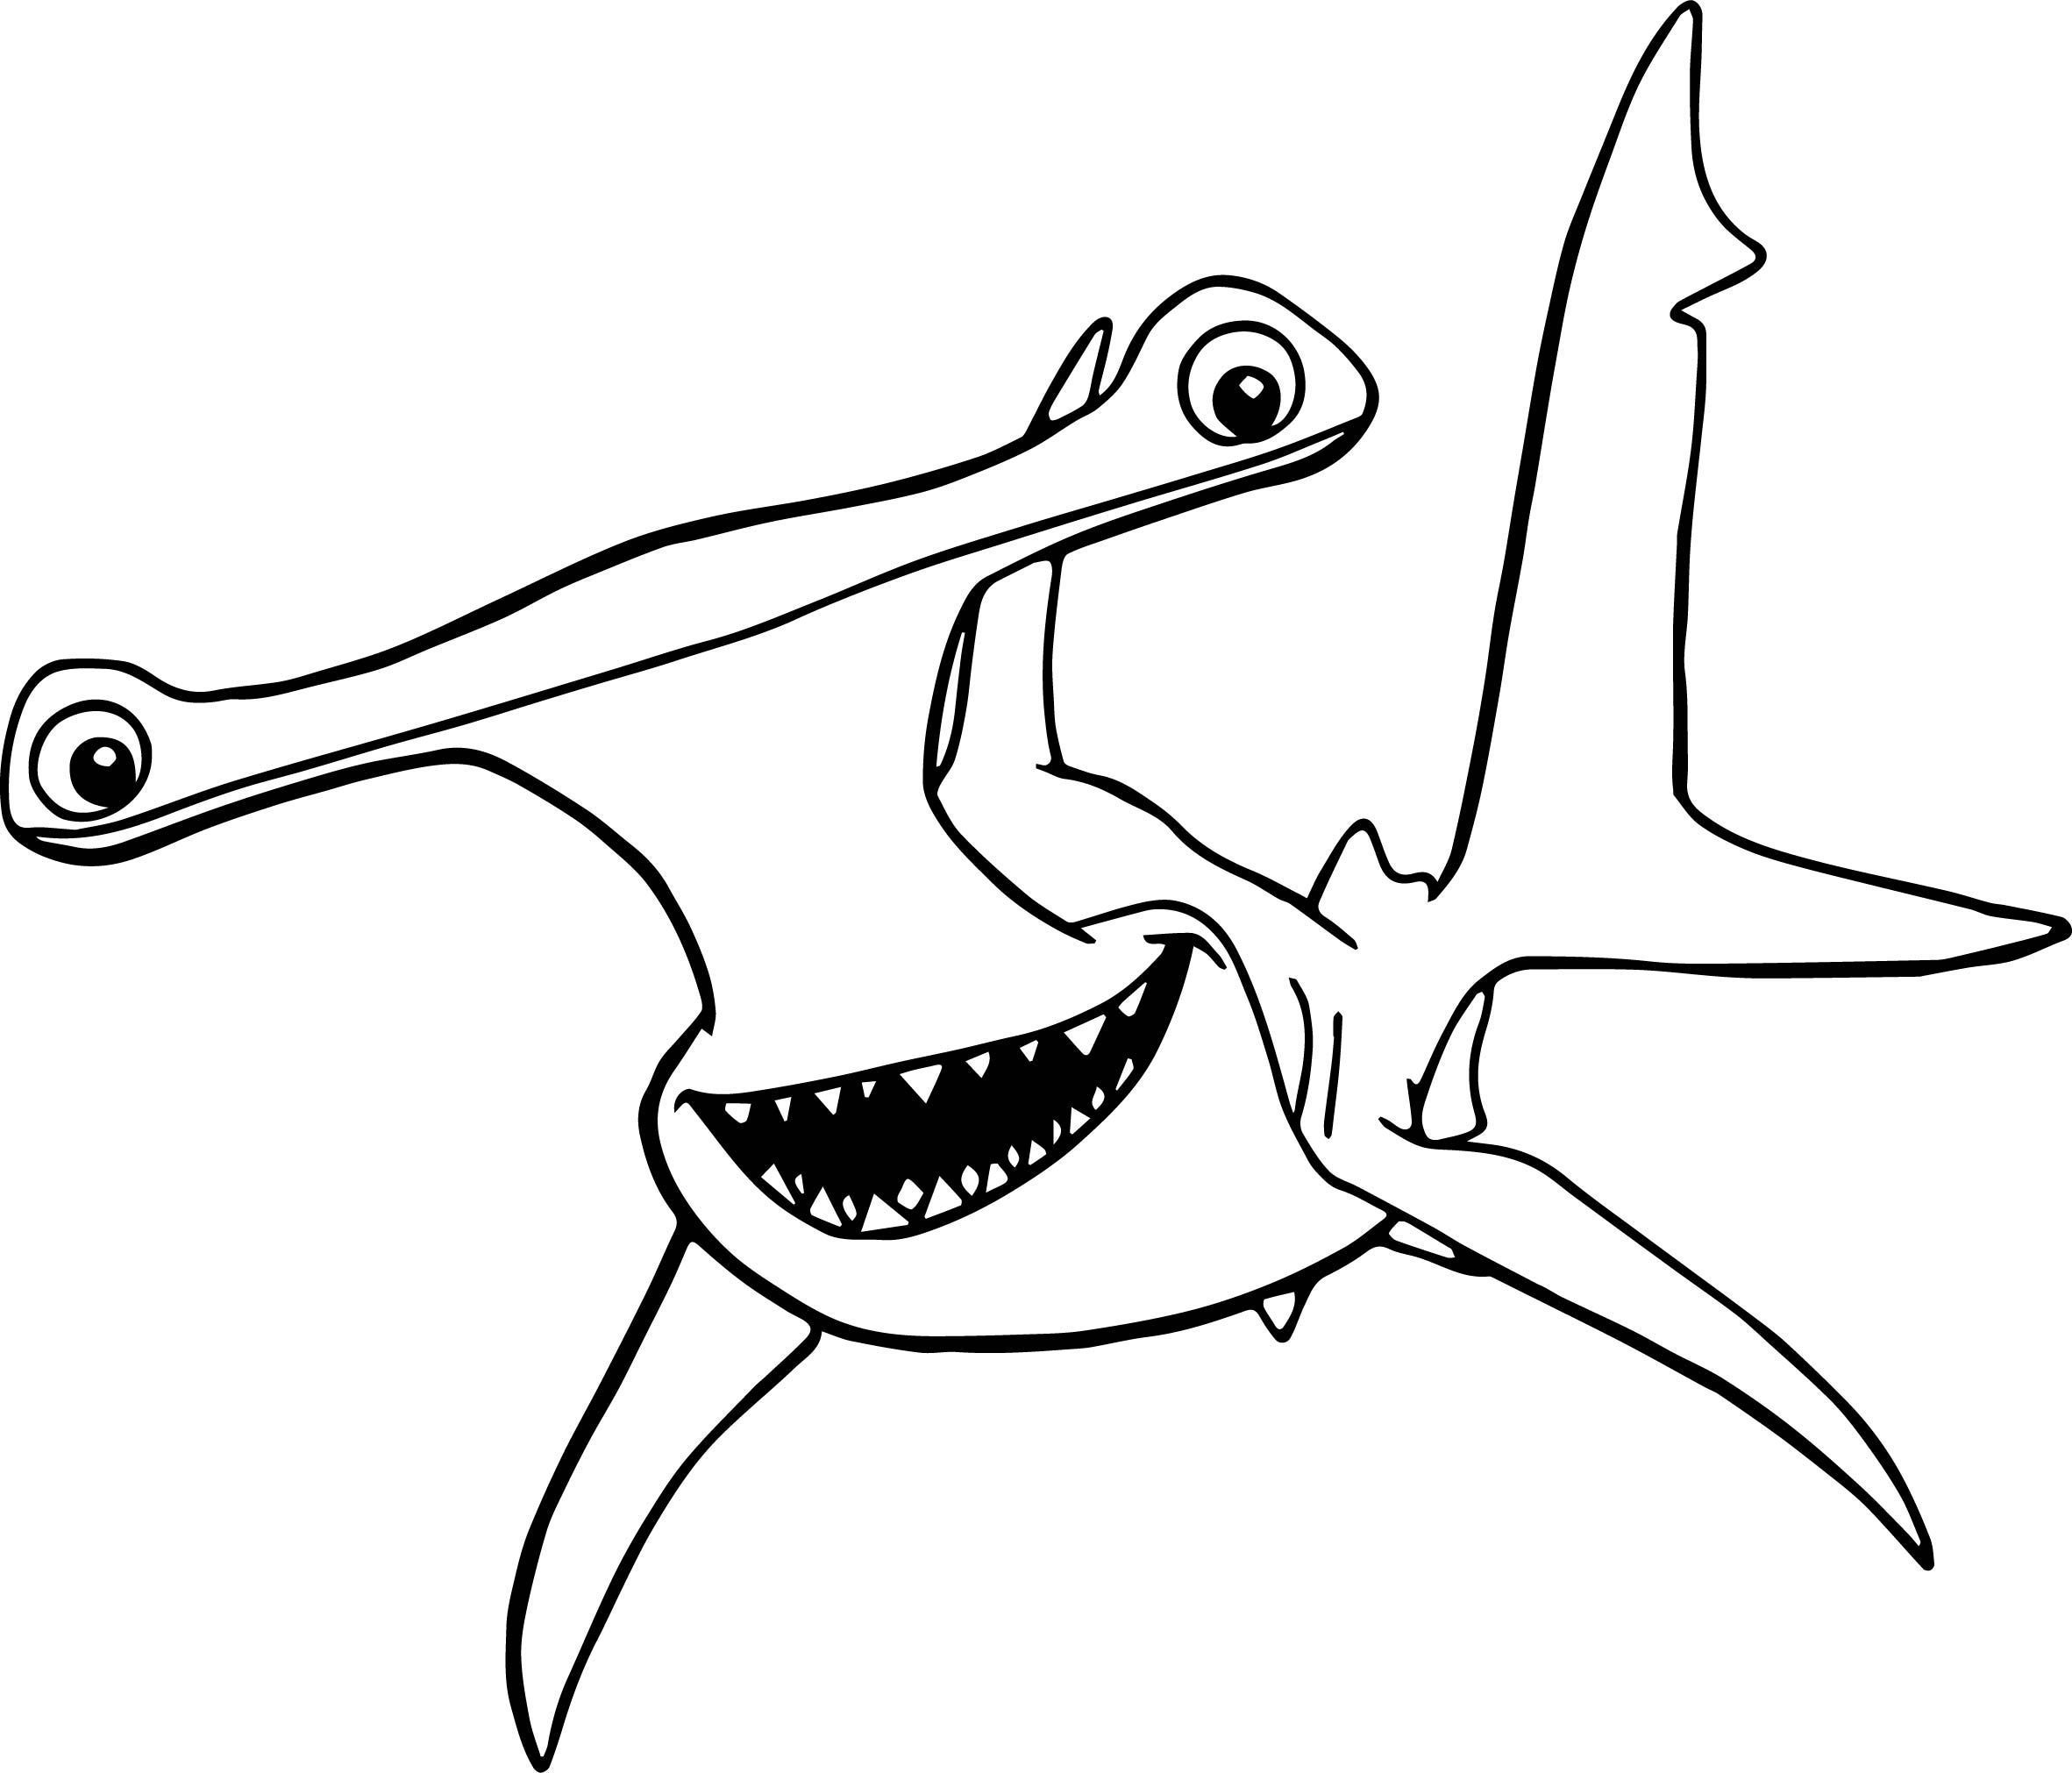 Disney Finding Nemo Anchor Coloring Pages Wecoloringpage Finding Nemo Coloring Pages Nemo Coloring Pages Finding Nemo Coloring Sheets